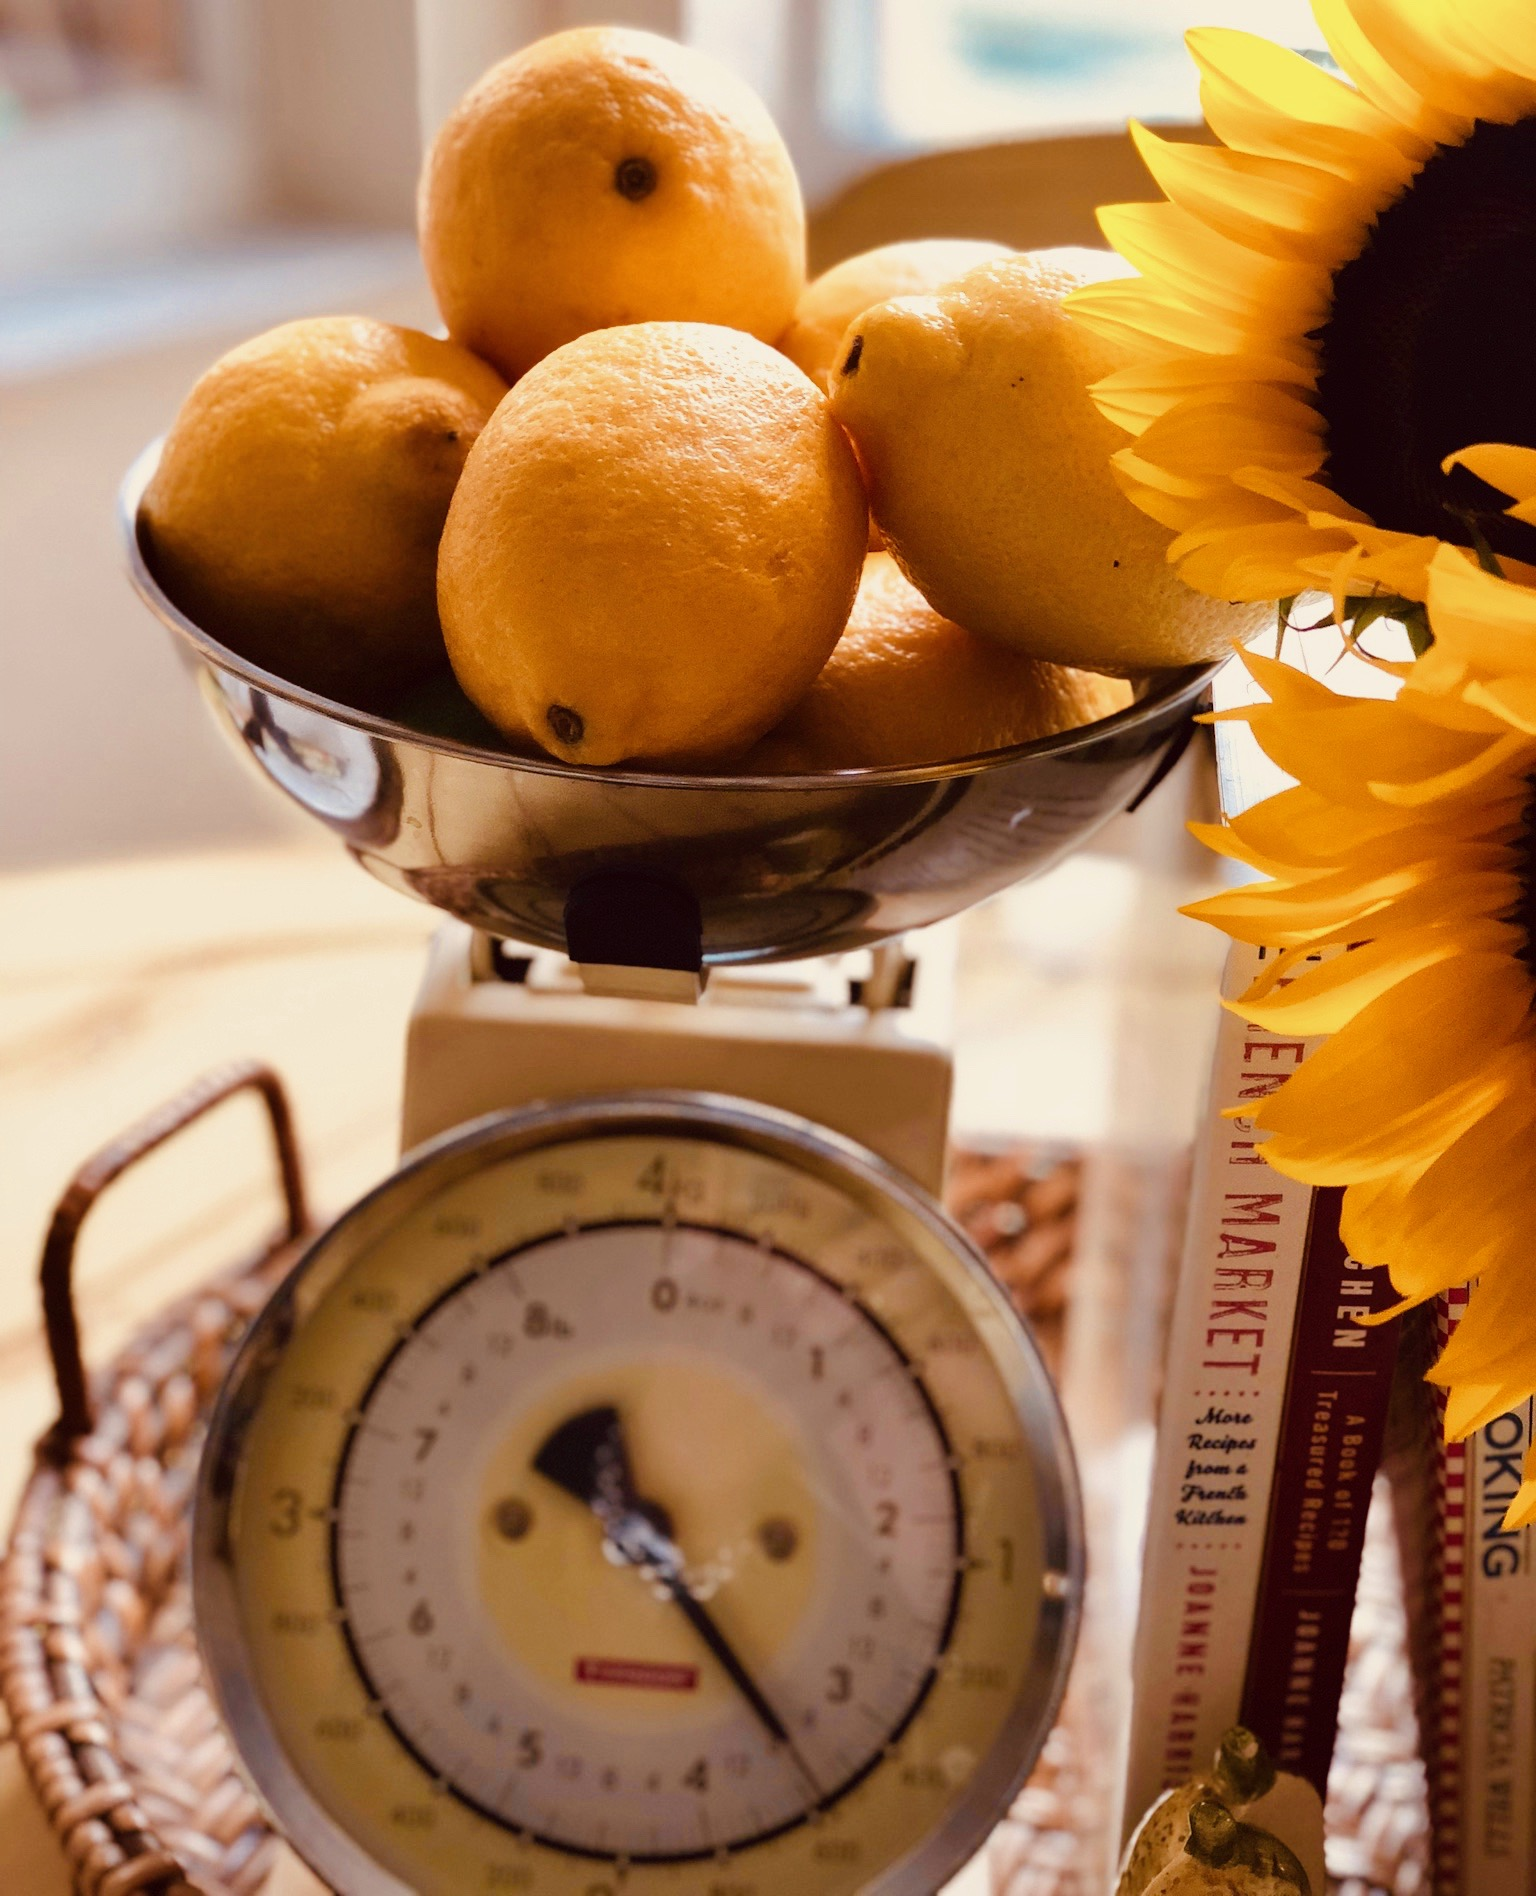 Vintage food scale with fresh lemons and sunflowers on a tray